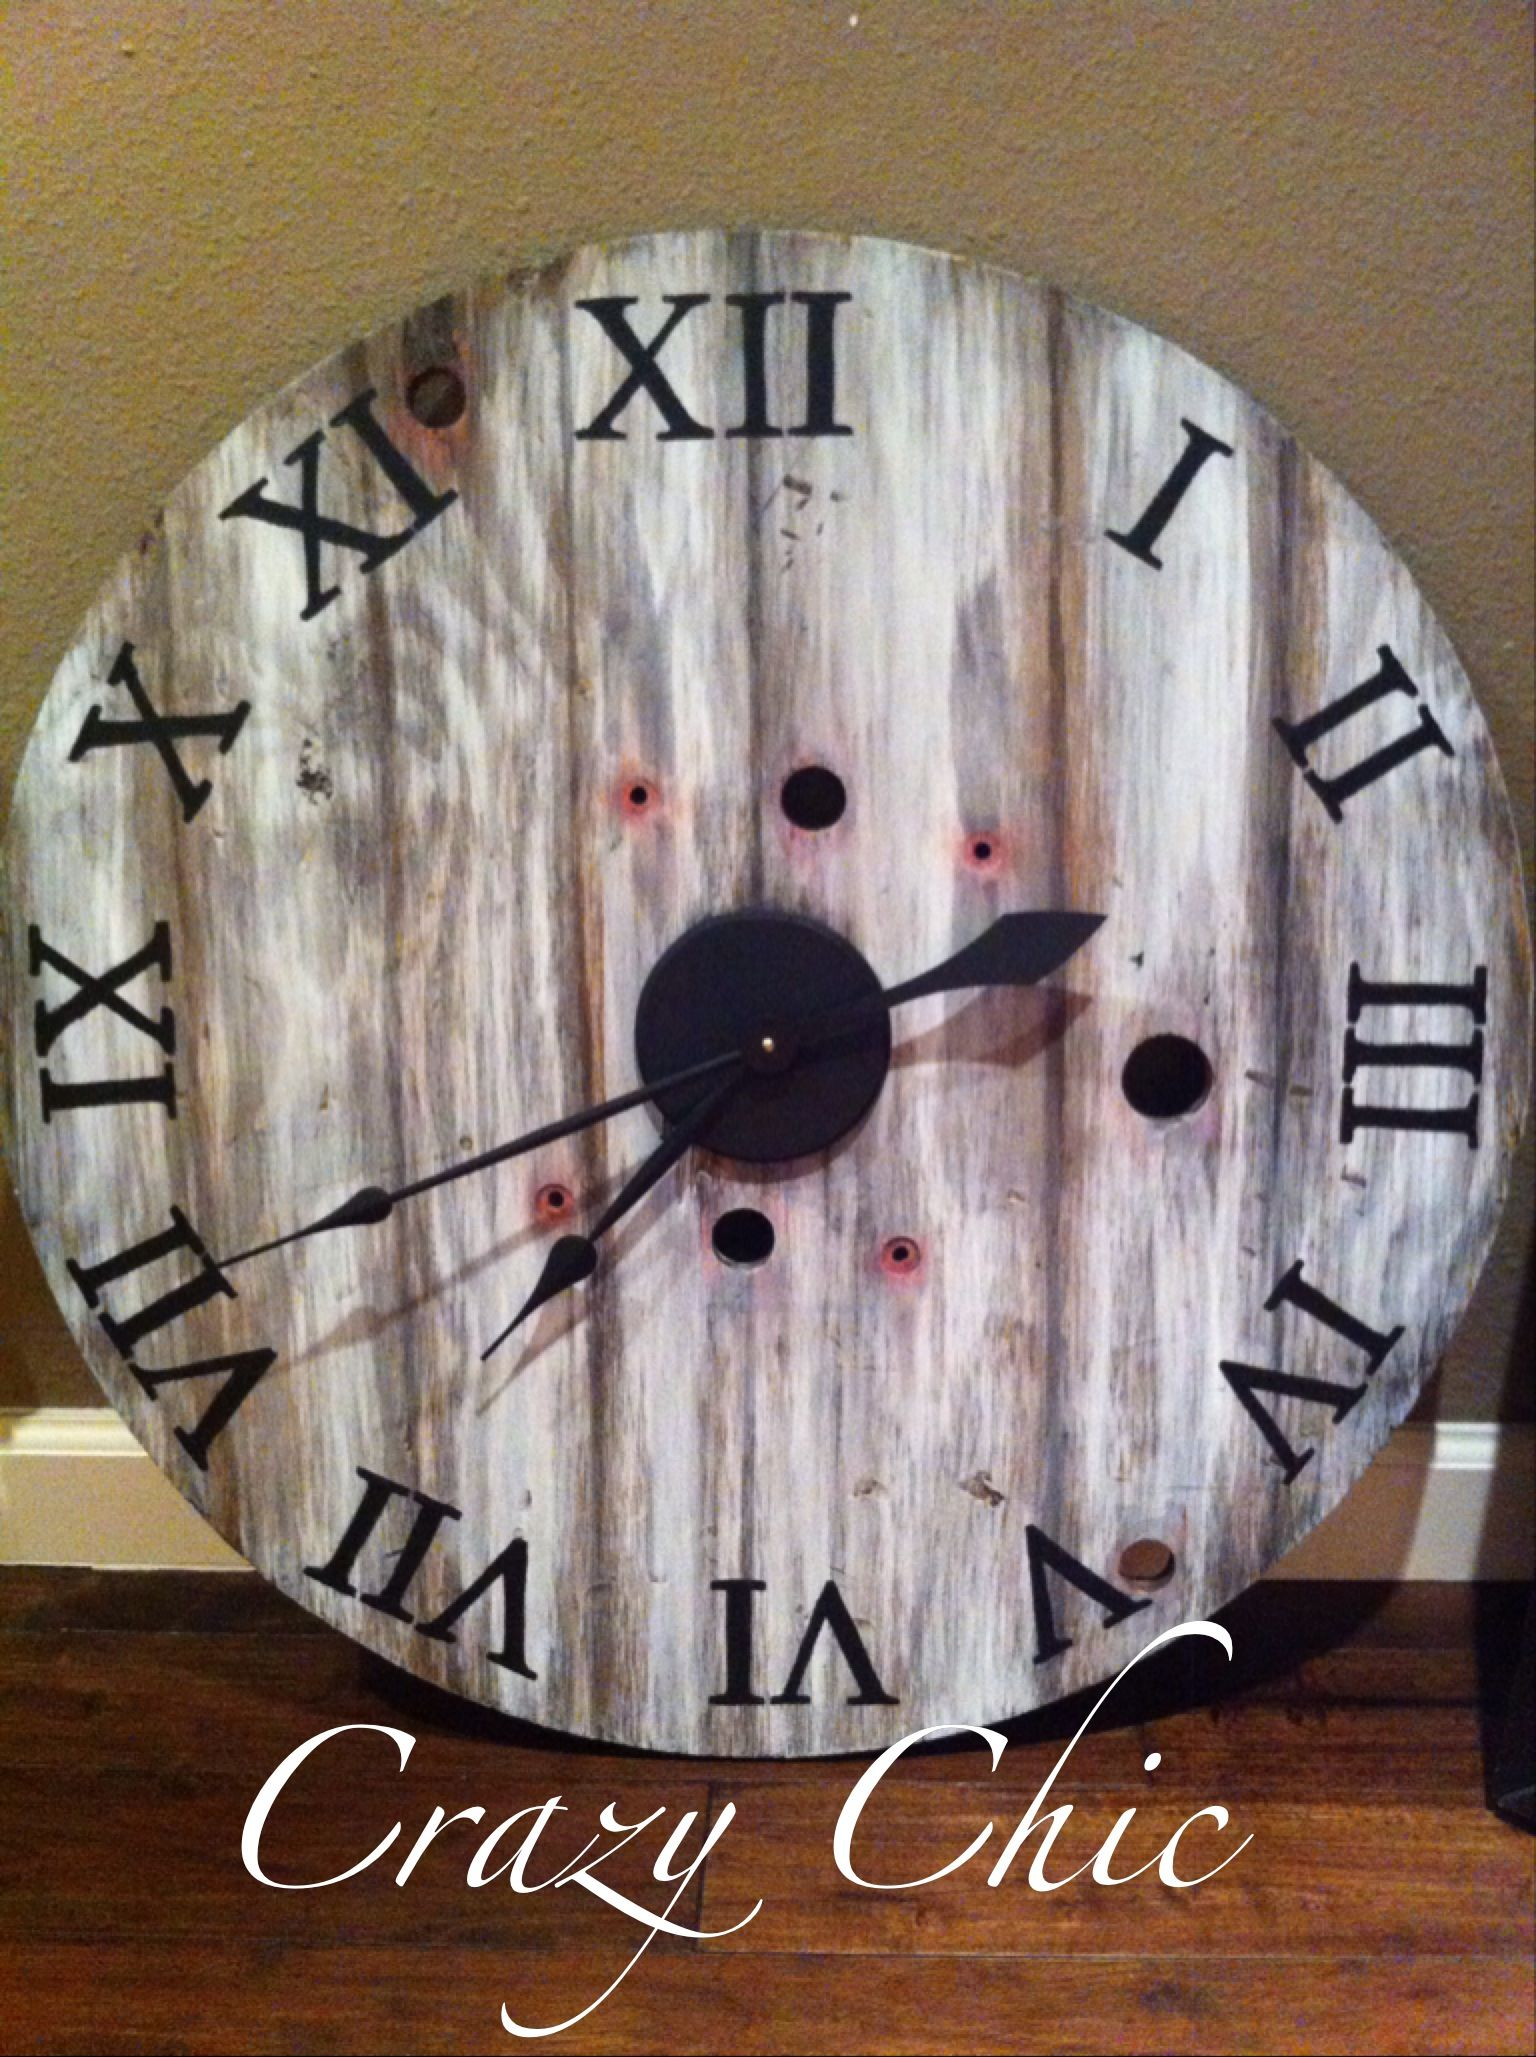 Am americana country wall clocks - Vintage Inspired Clock I Made From An Old Cable Reel